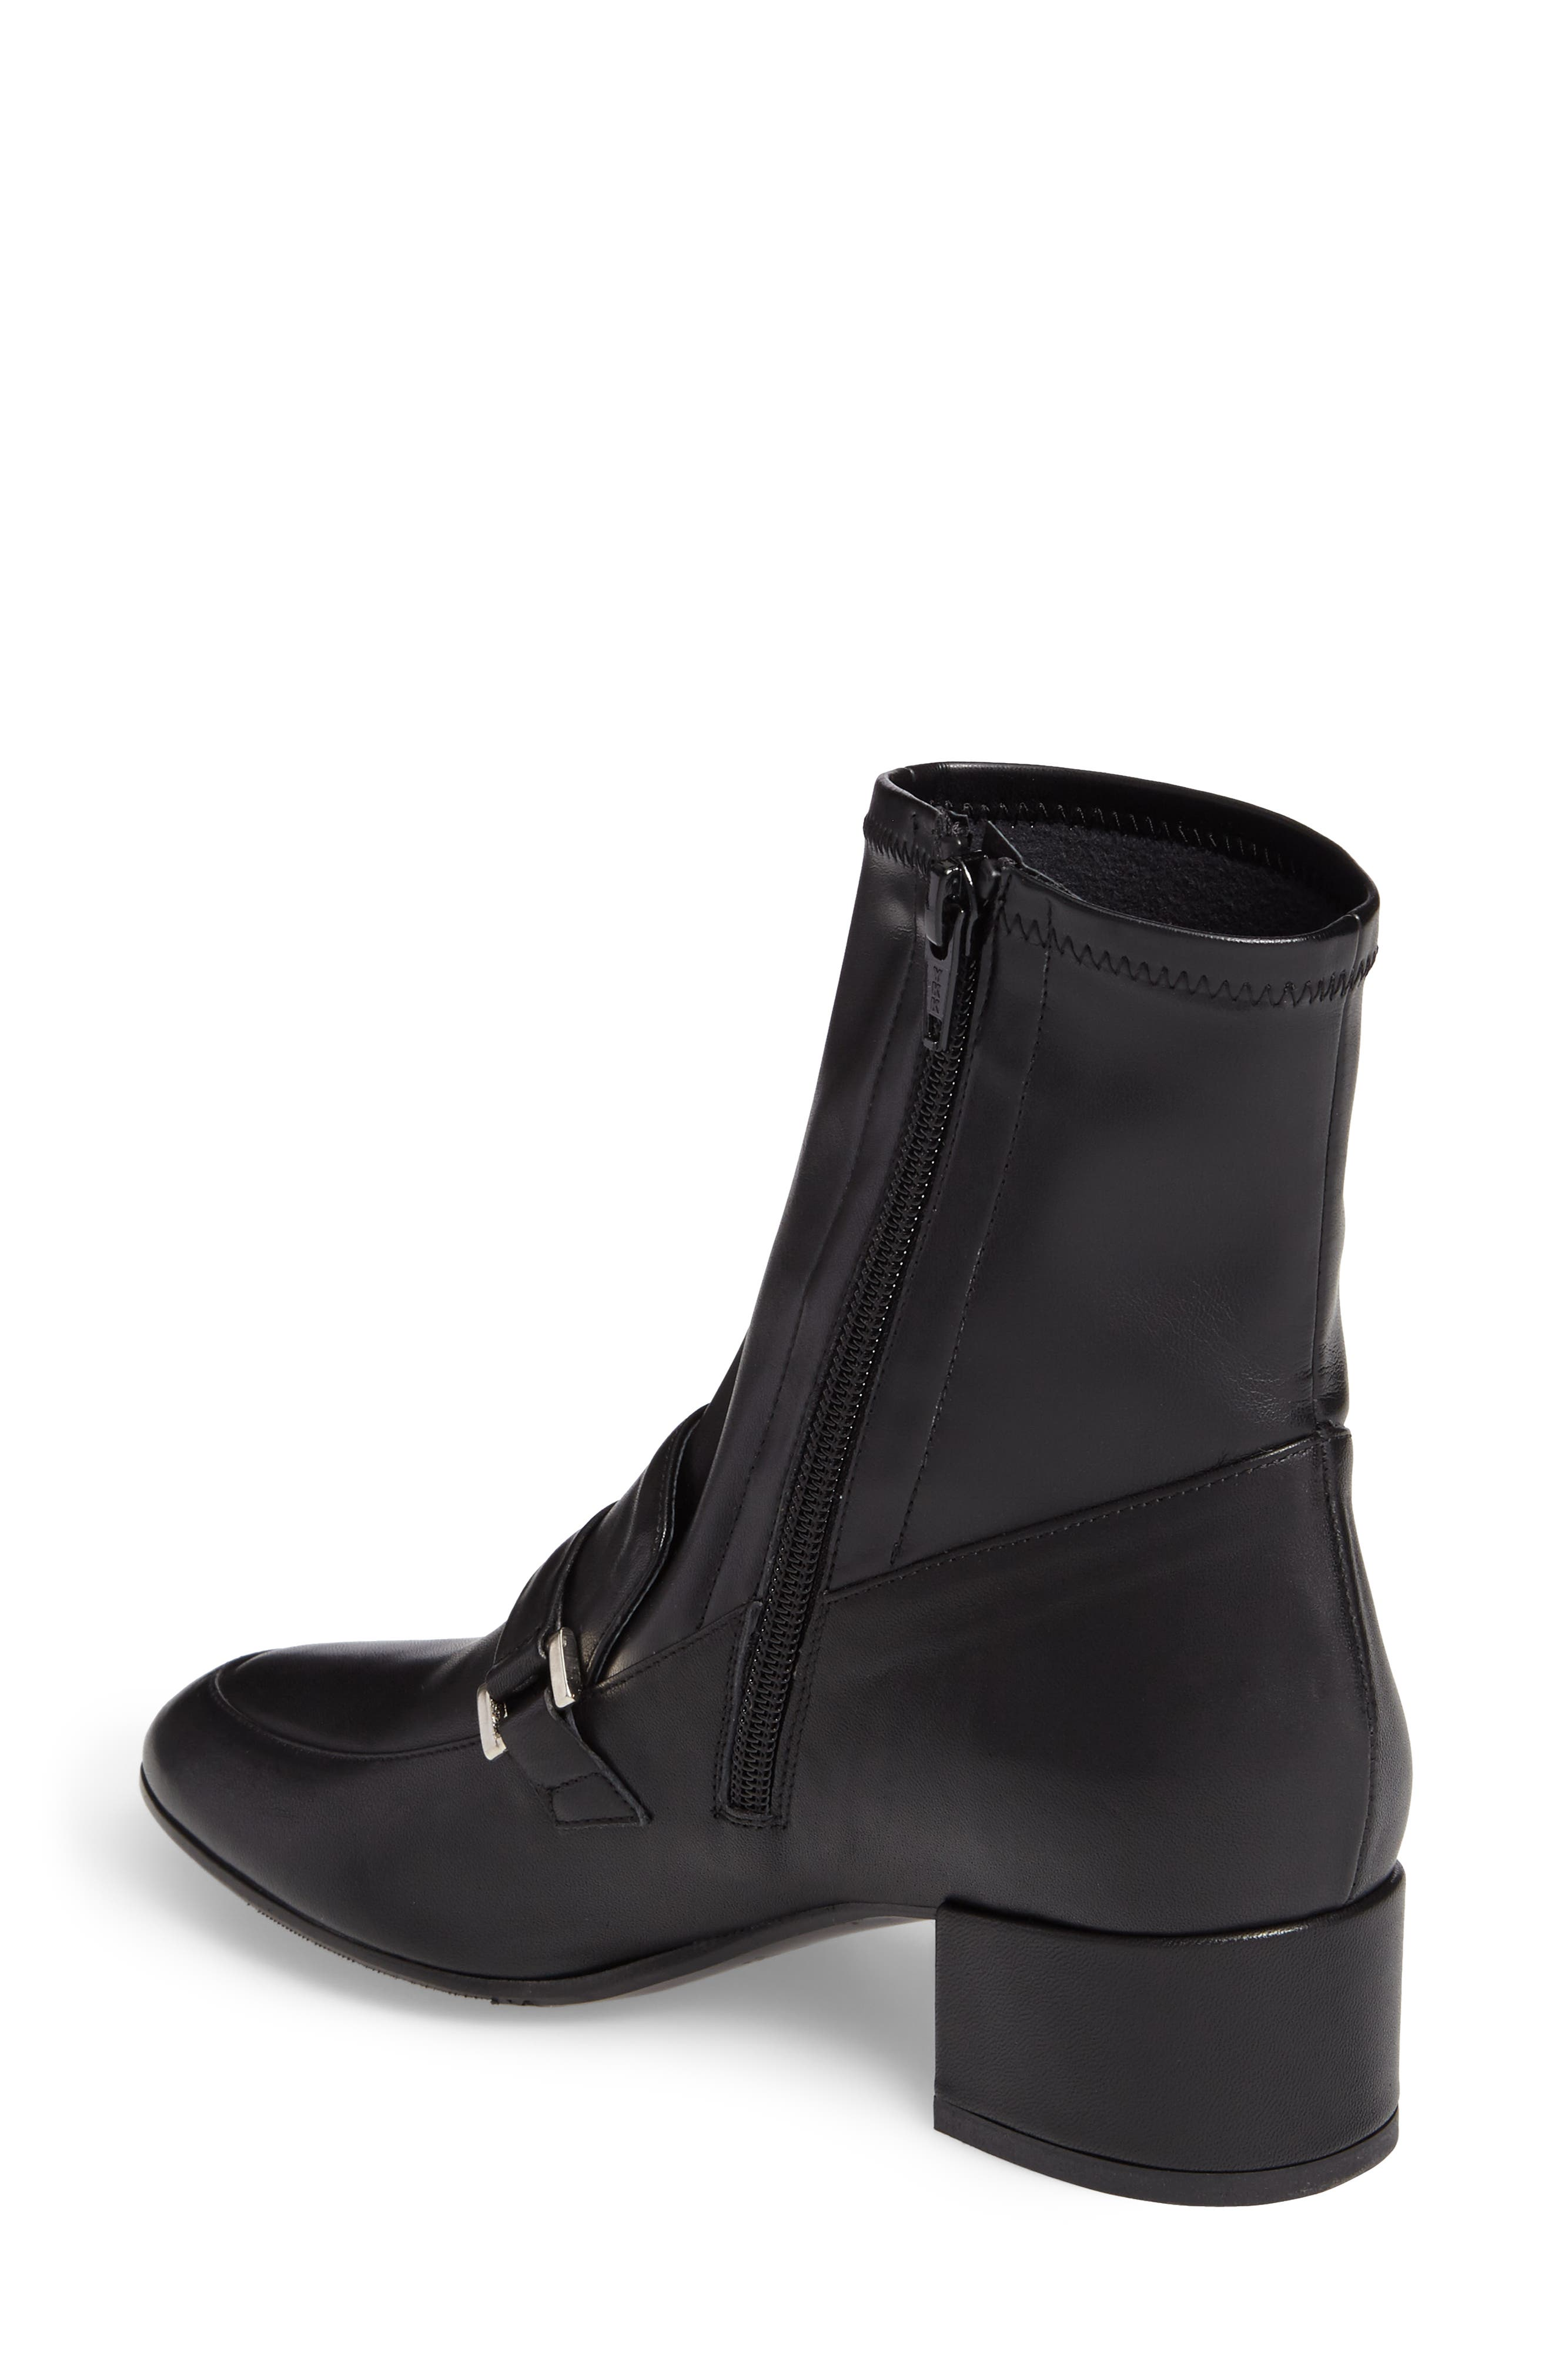 Mod Loafer Bootie,                             Alternate thumbnail 2, color,                             001